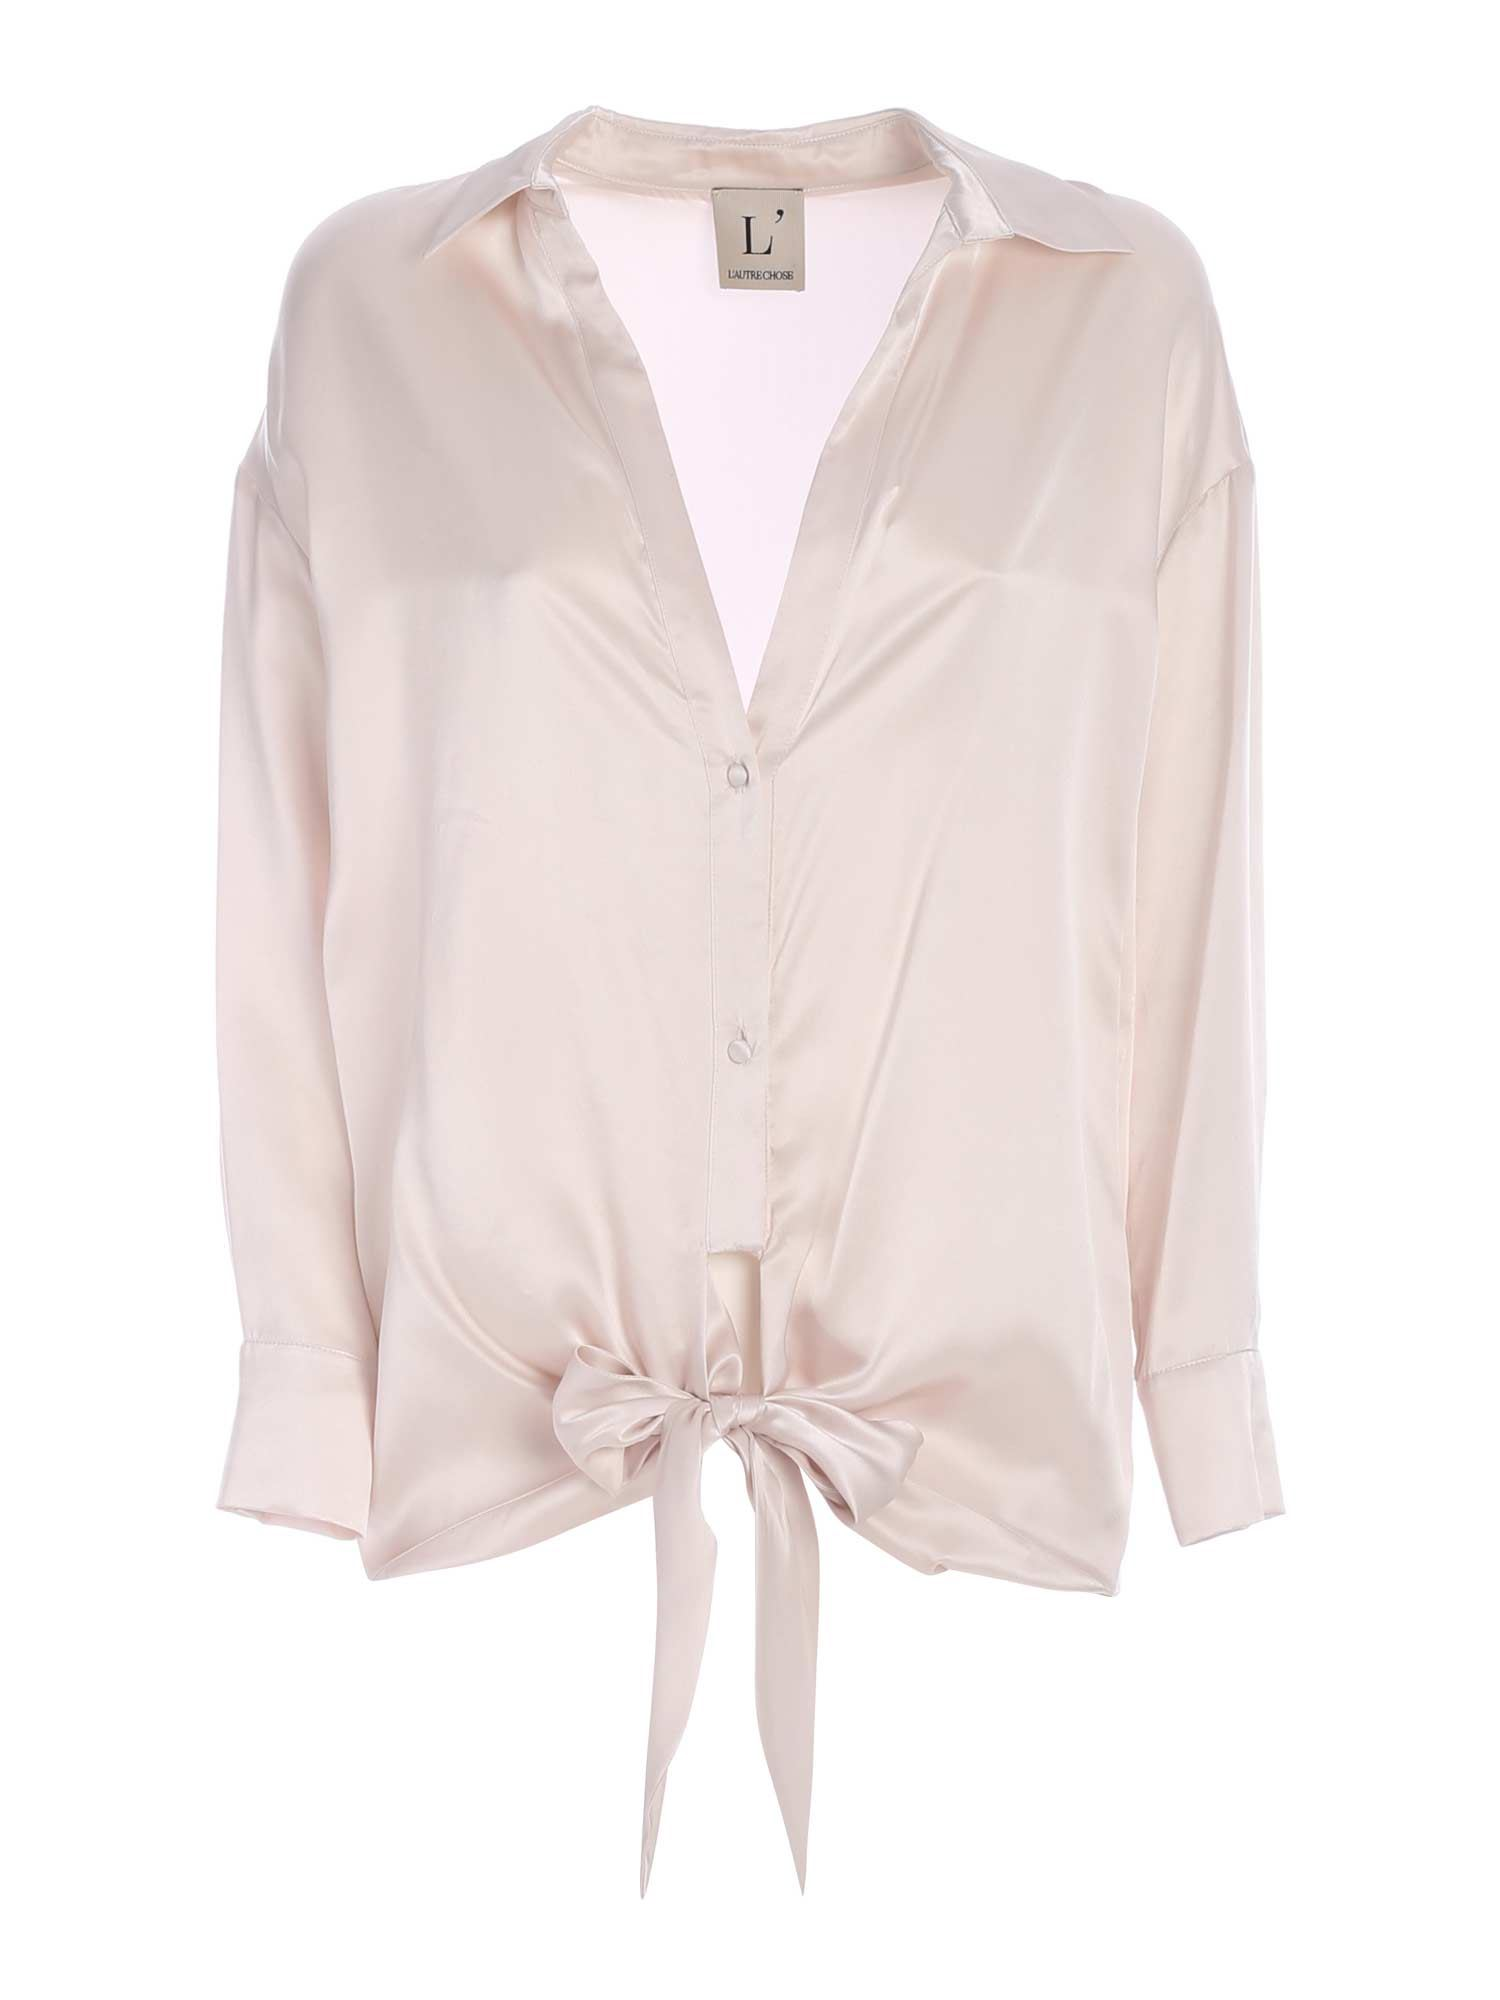 L'autre Chose BOW ON THE HEM SHIRT IN LIGHT PINK